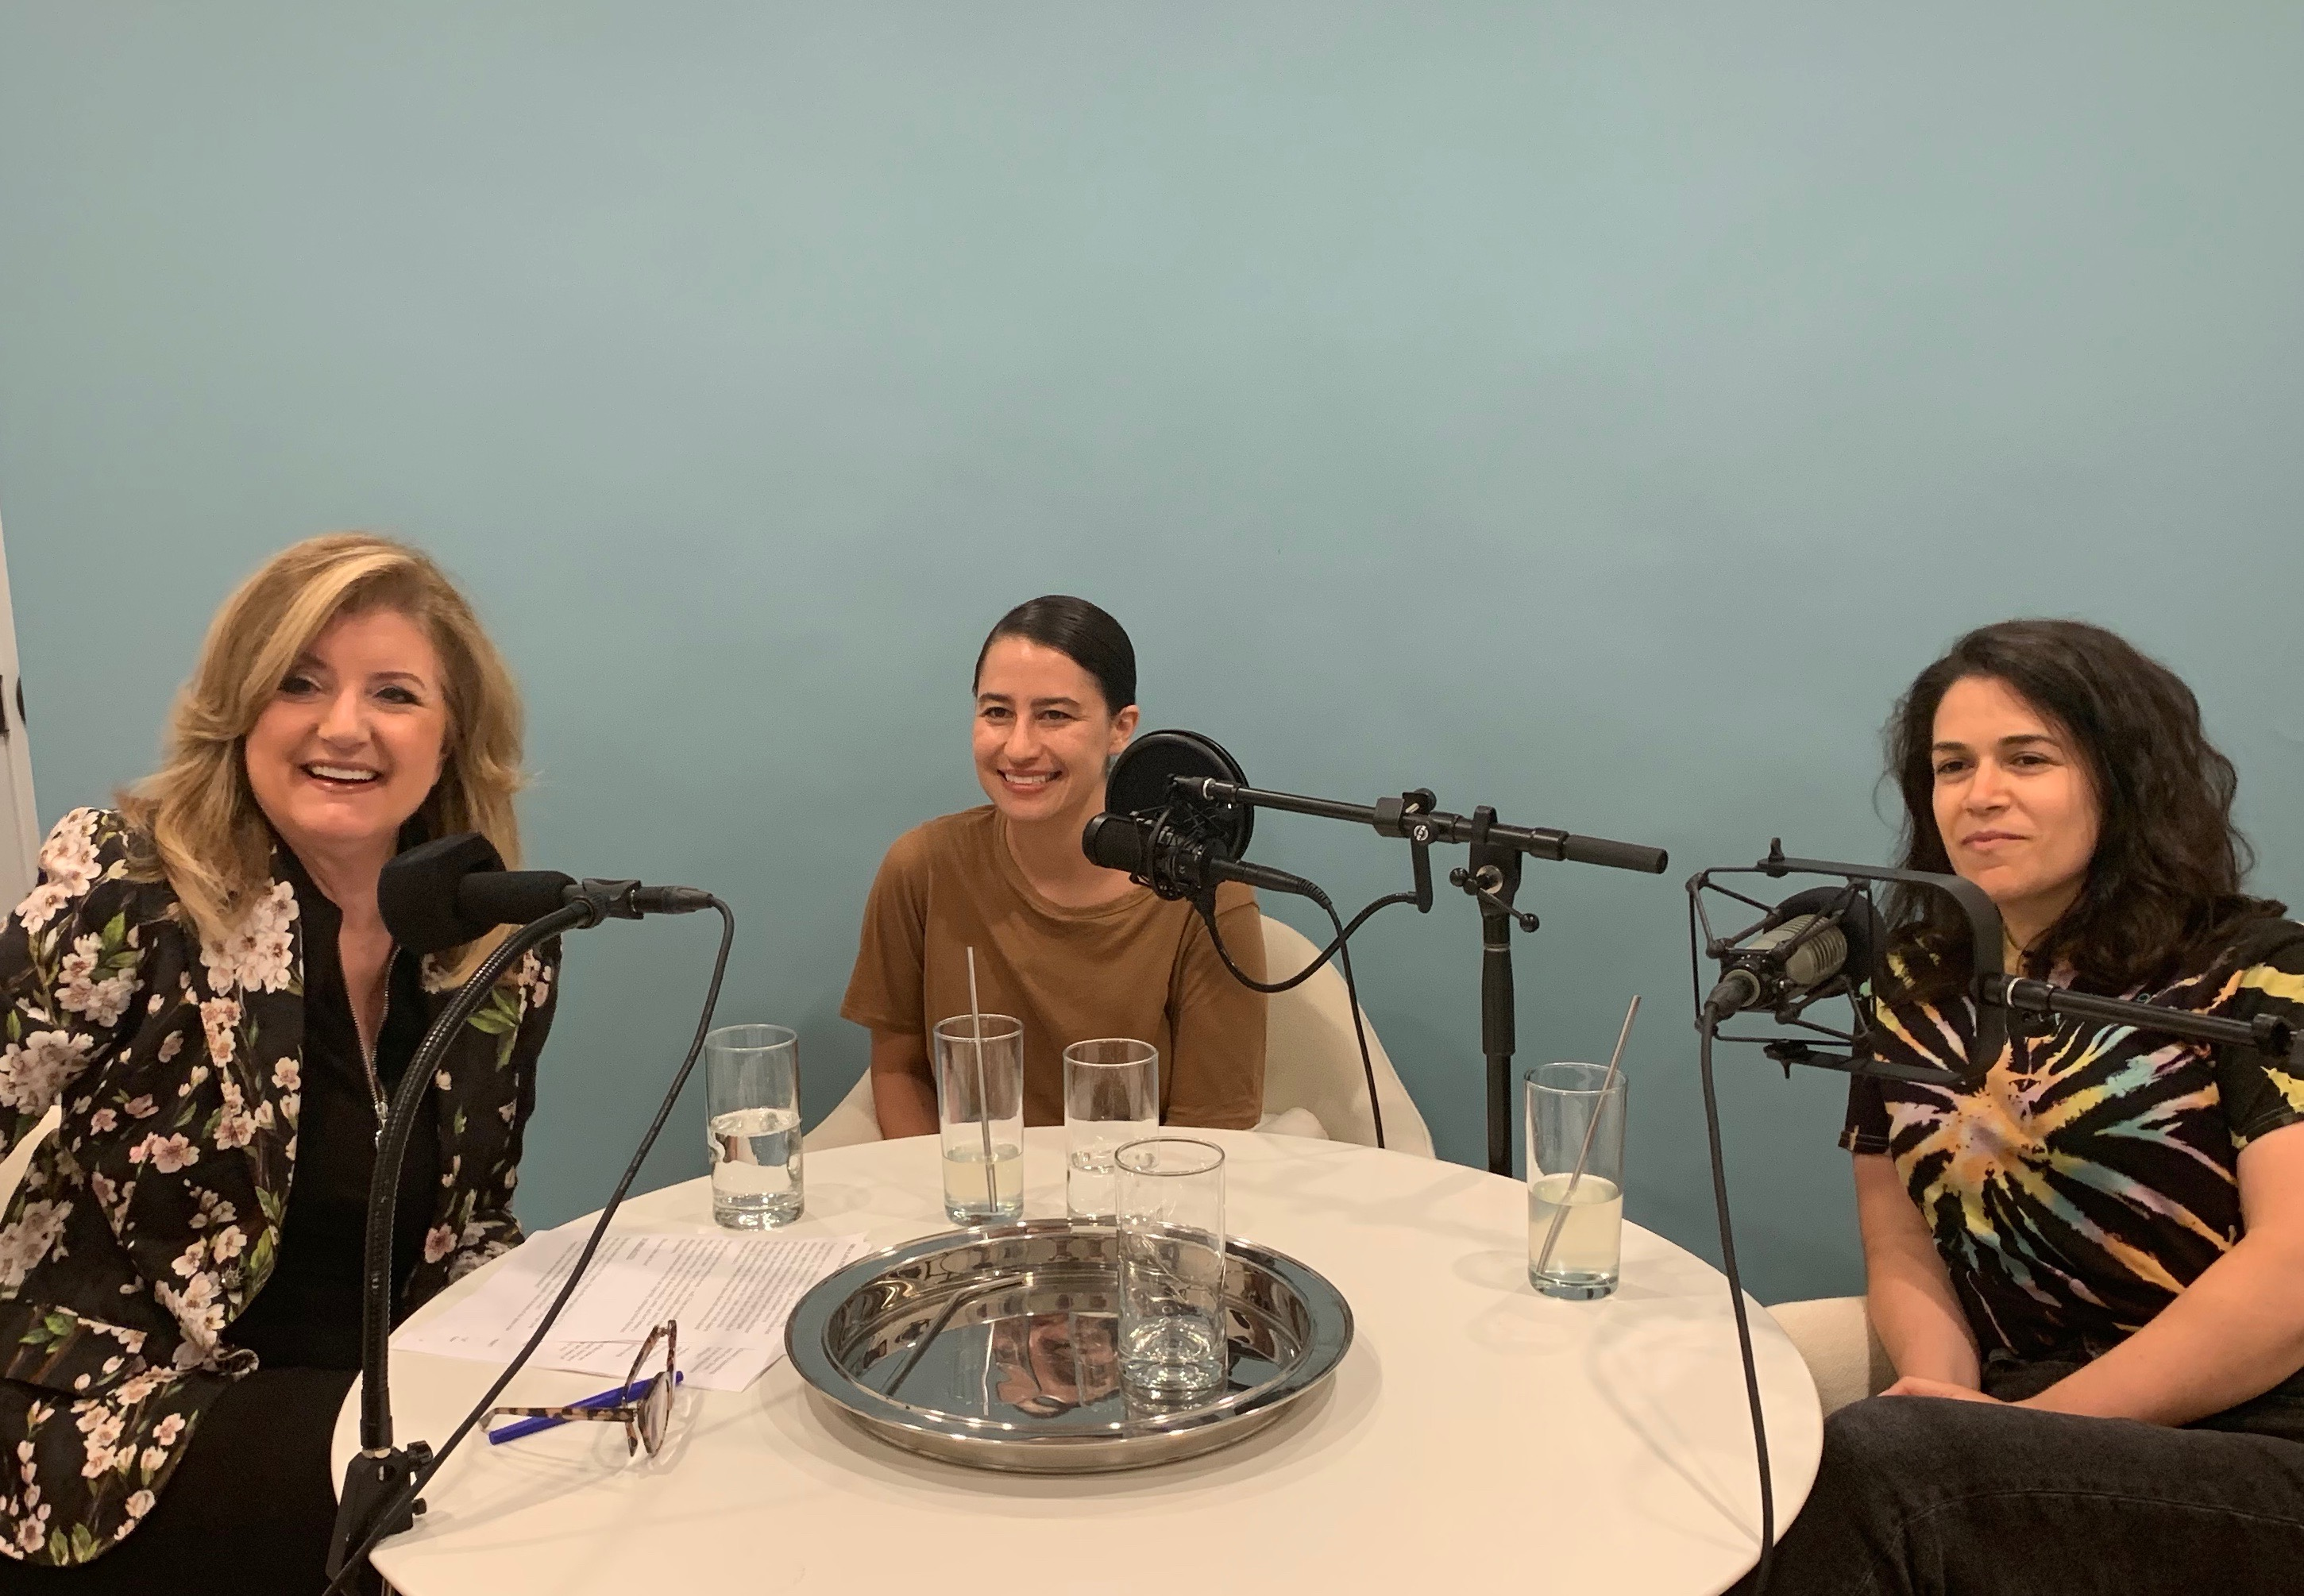 The Thrive Global Podcast: Season 3, Episode 2 with Ilana Glazer and Abbi Jacobson